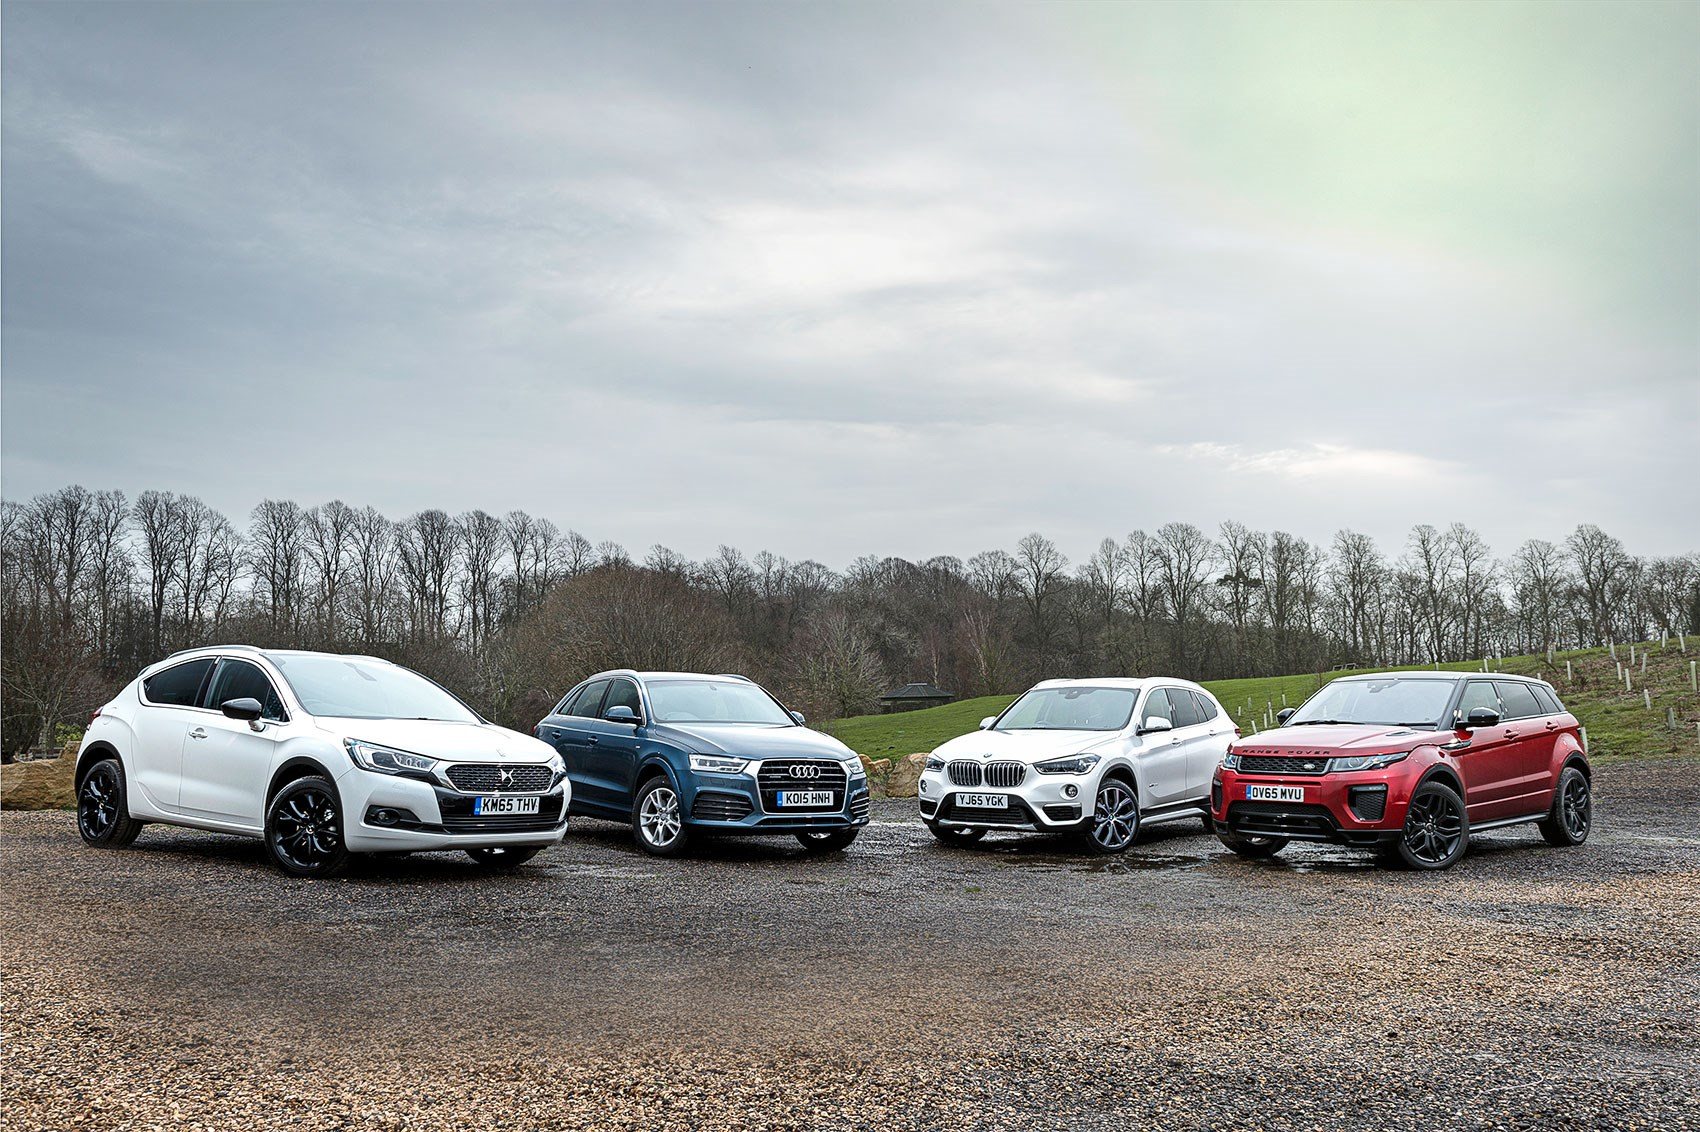 DS4 Crossback vs Audi Q3 vs BMW X1 vs Range Rover Evoque: quick